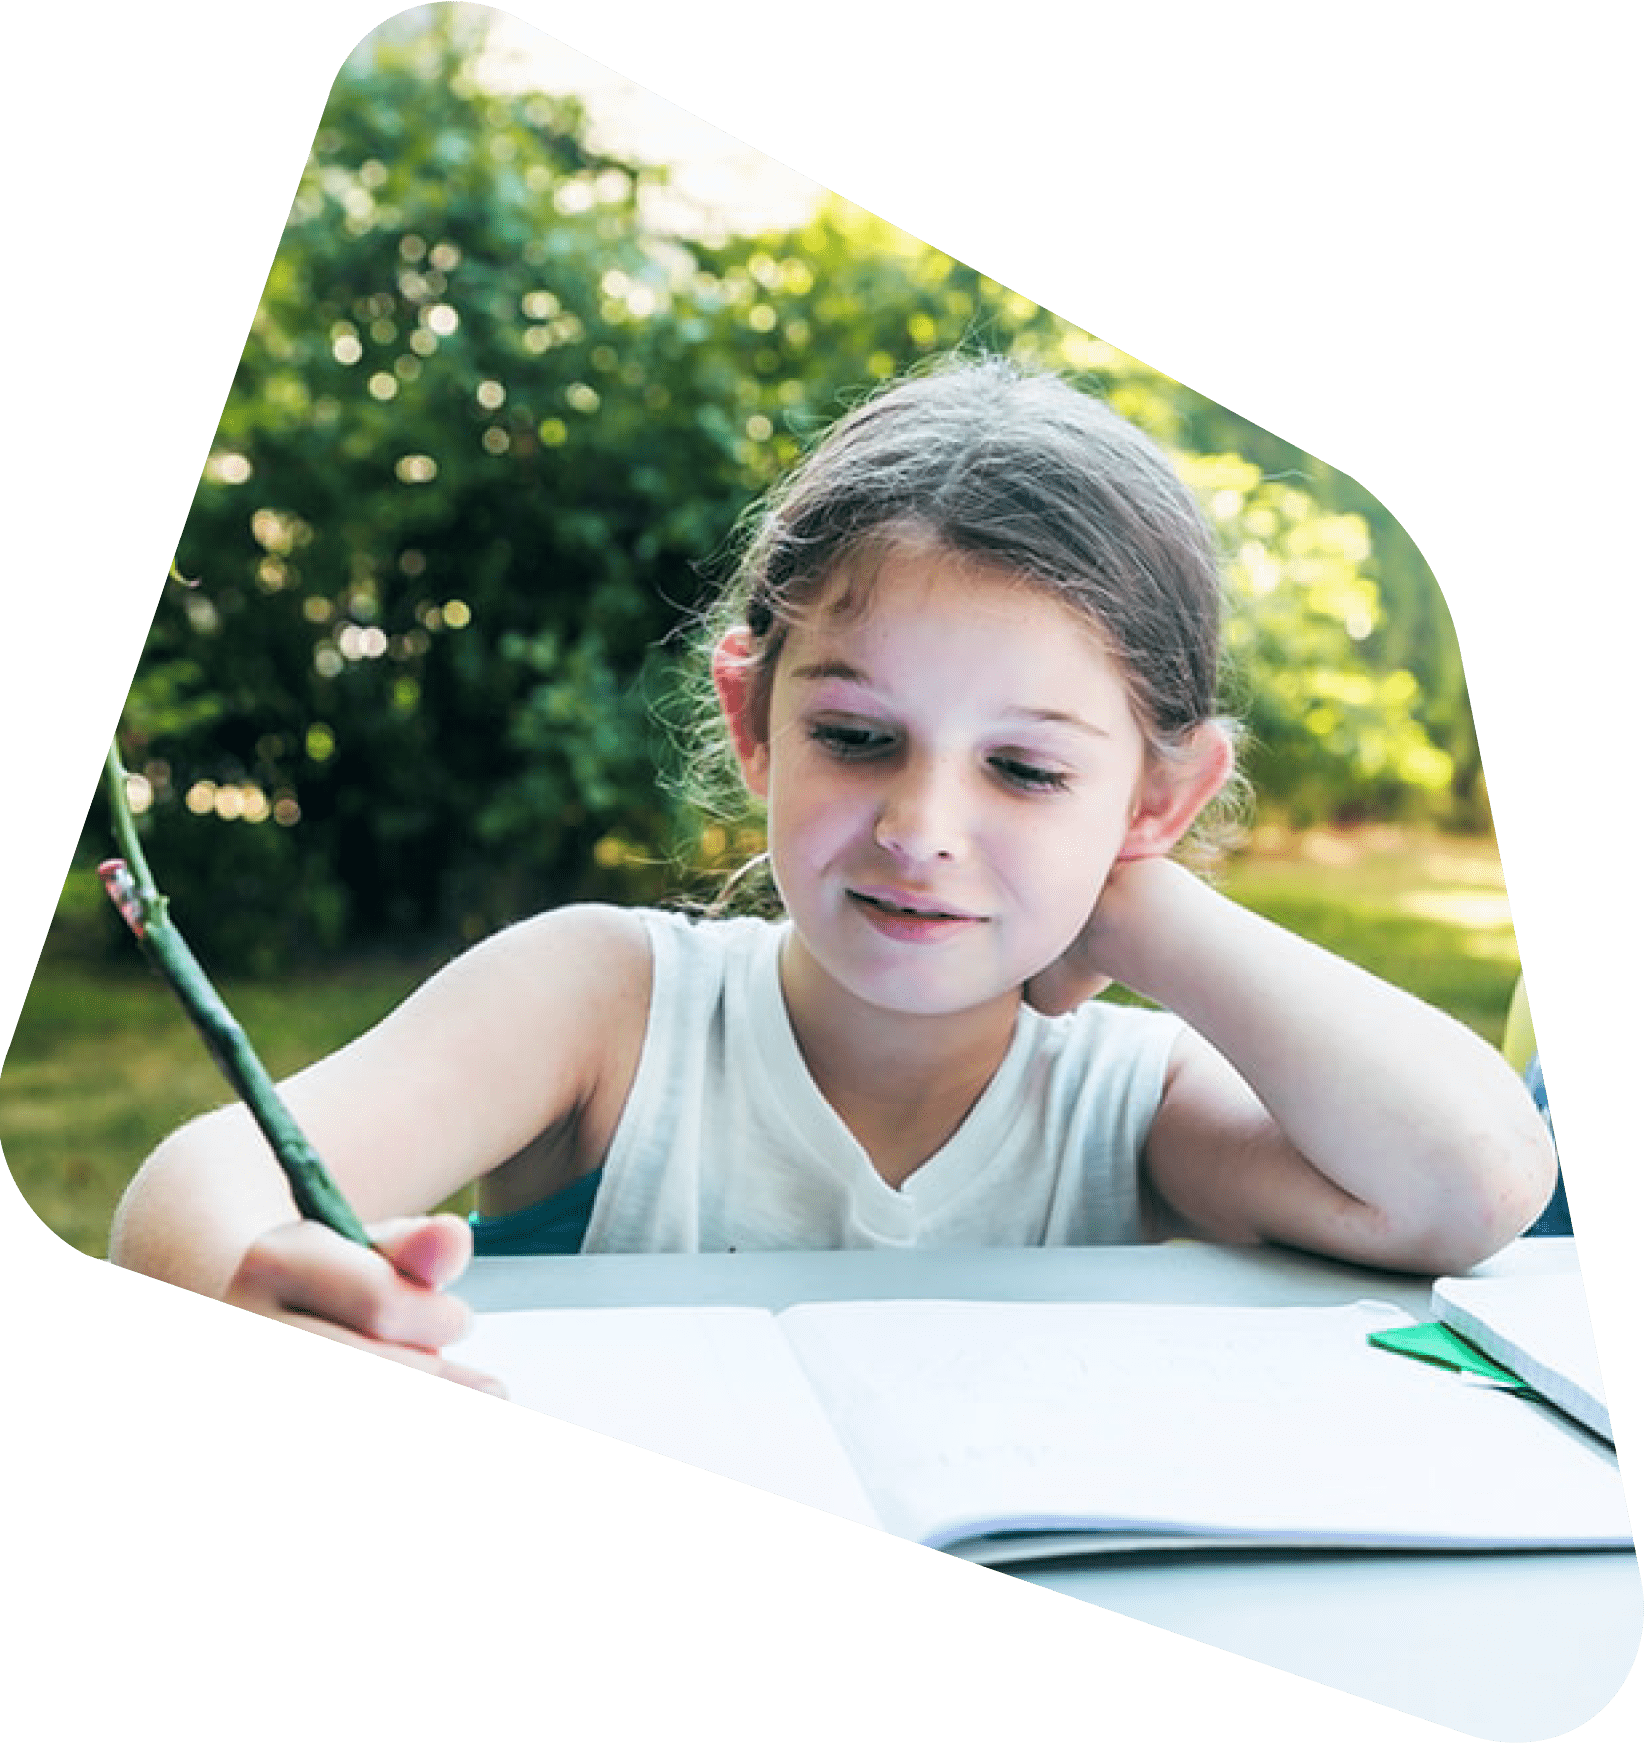 Young girl sitting outside practicing her handwriting with a flower pen